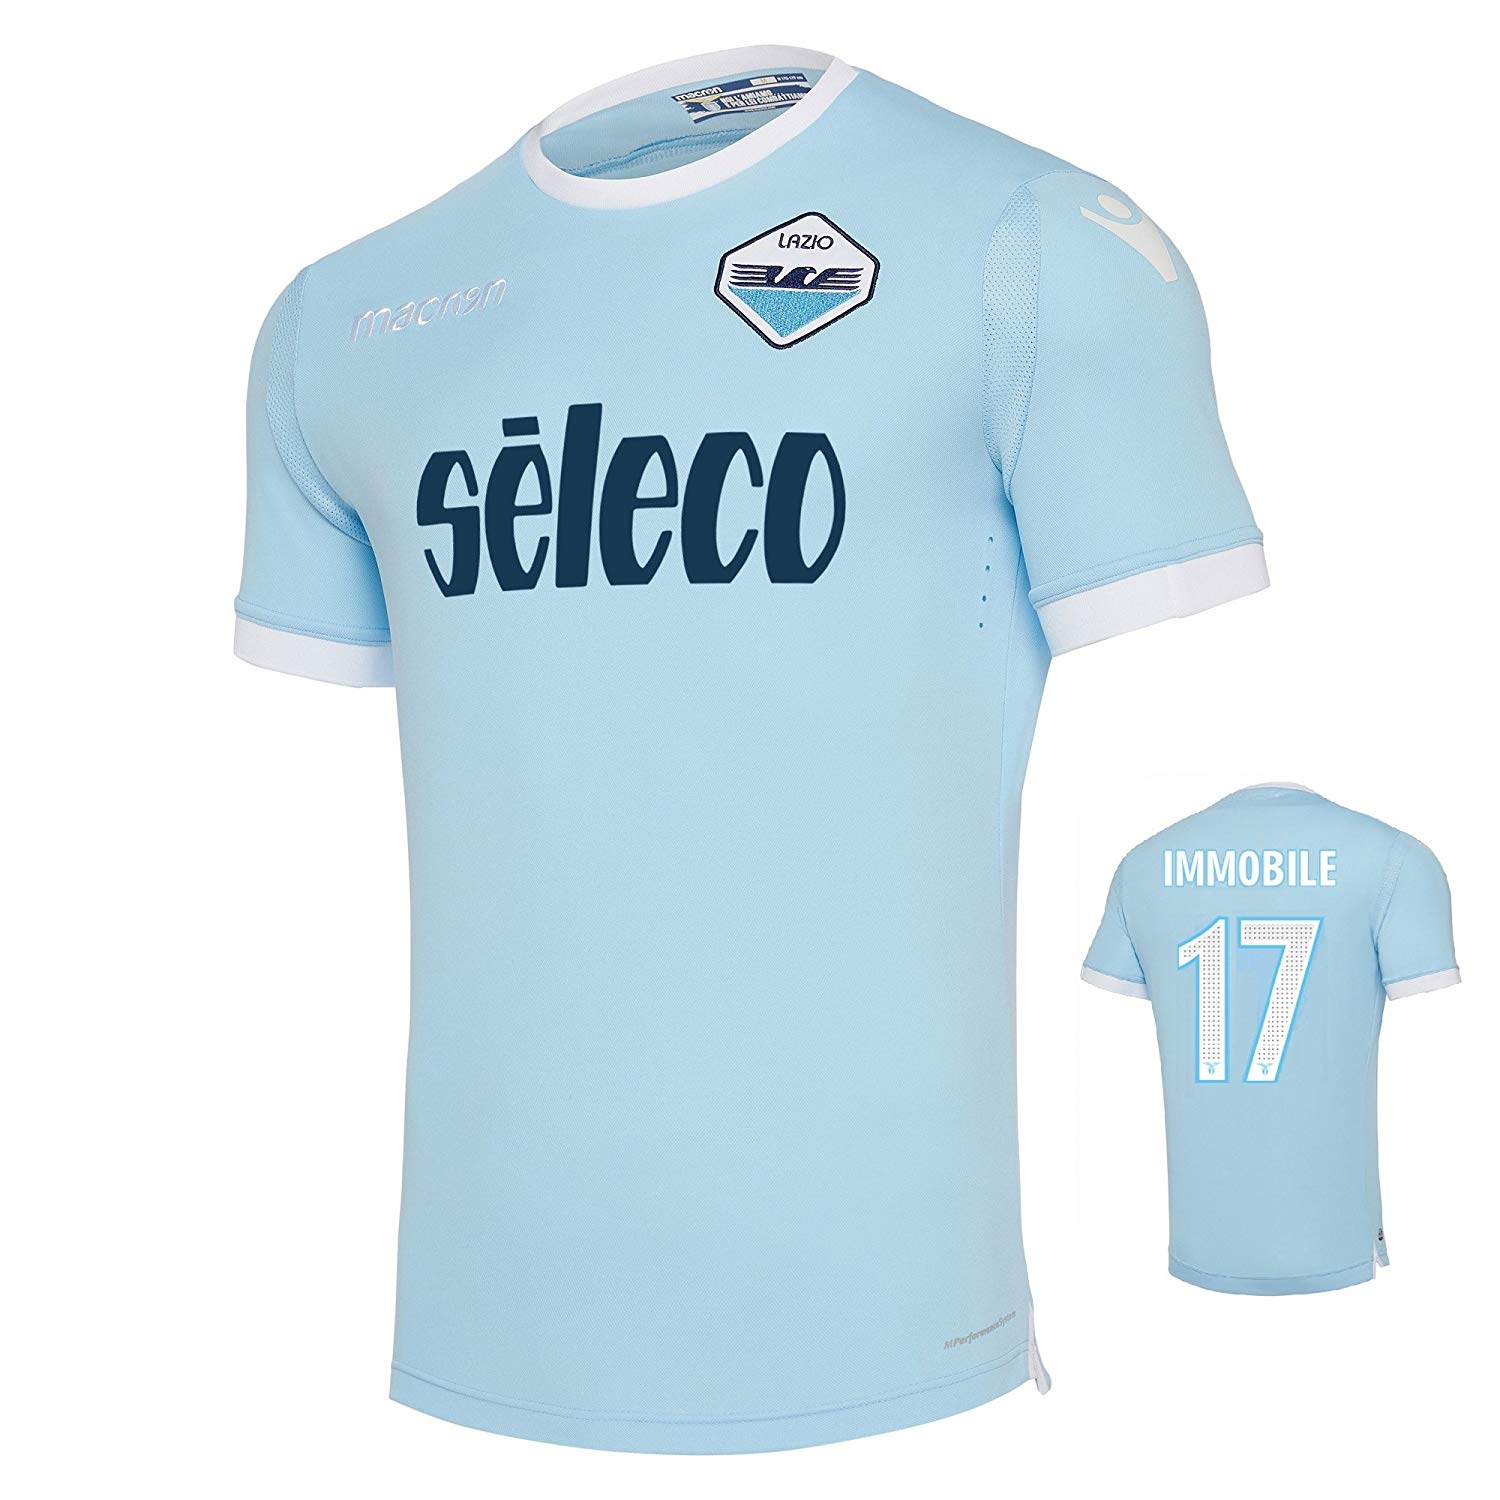 5066e5016aa Get Quotations · SS Lazio Authentic Home Immobile Jersey 2017 18 Macron  (Original Printing)